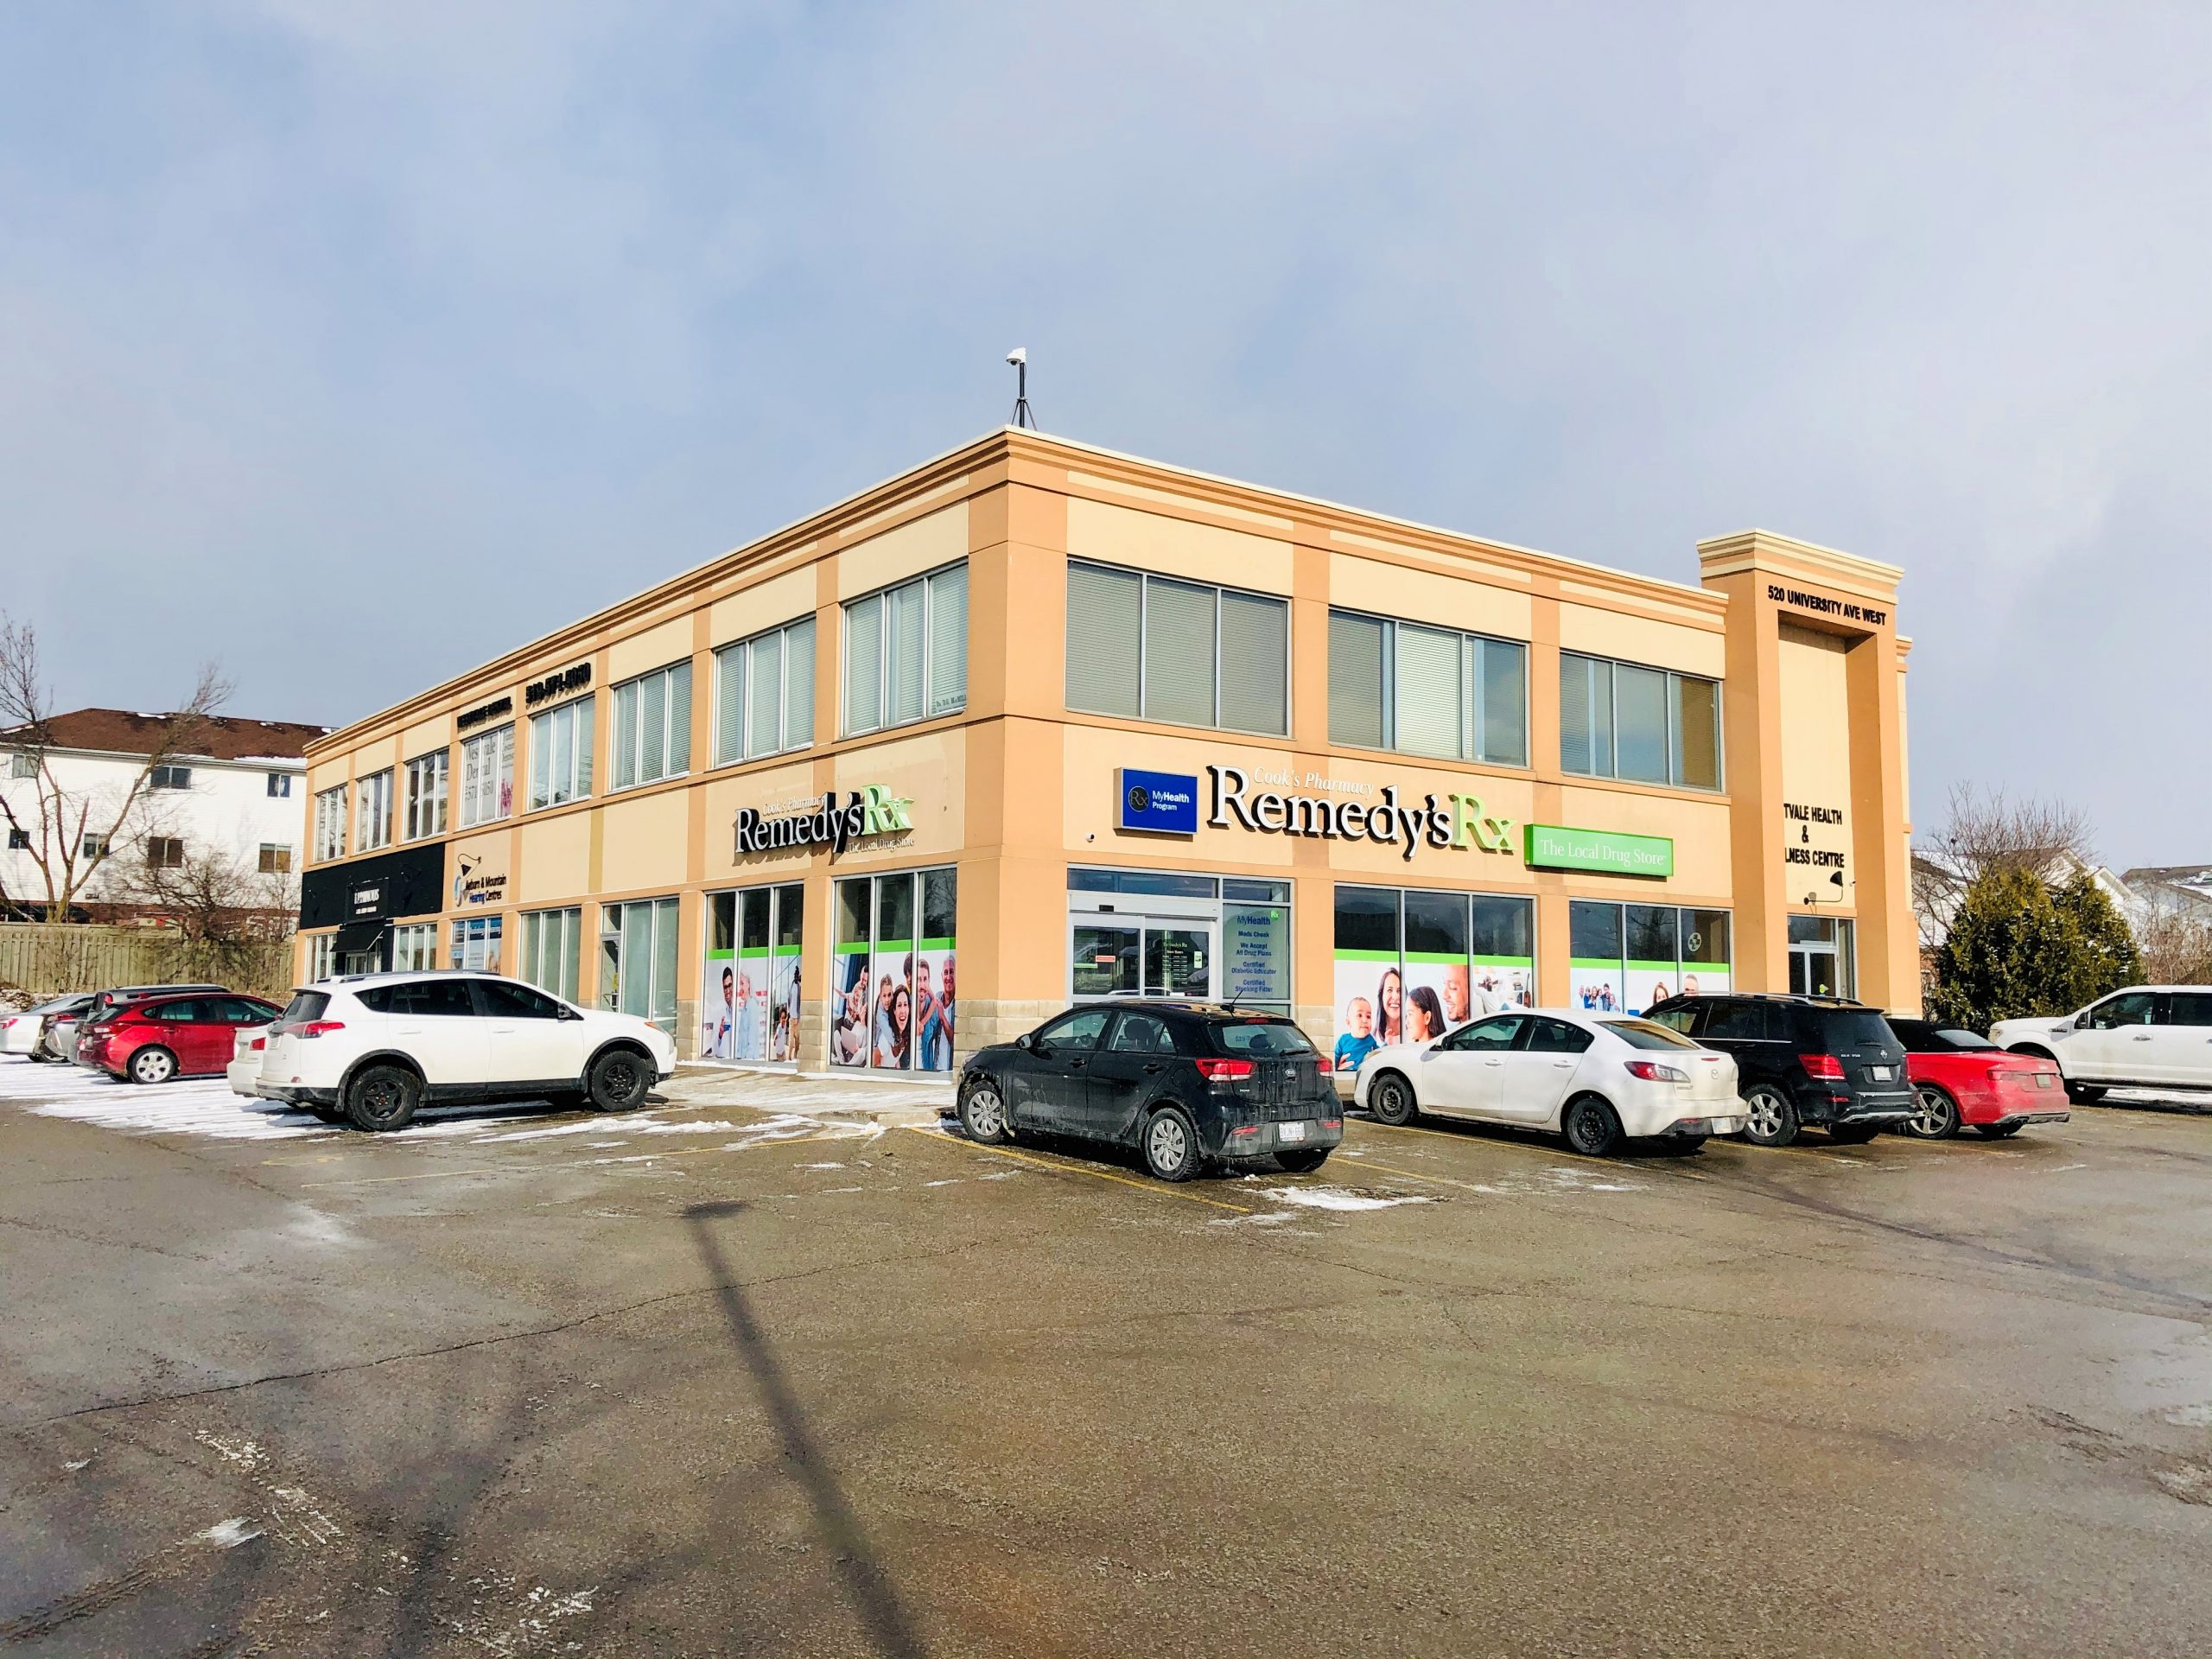 520 University Ave W (Unit 103), Waterloo | High Profile Retail/Office Space For Sublease